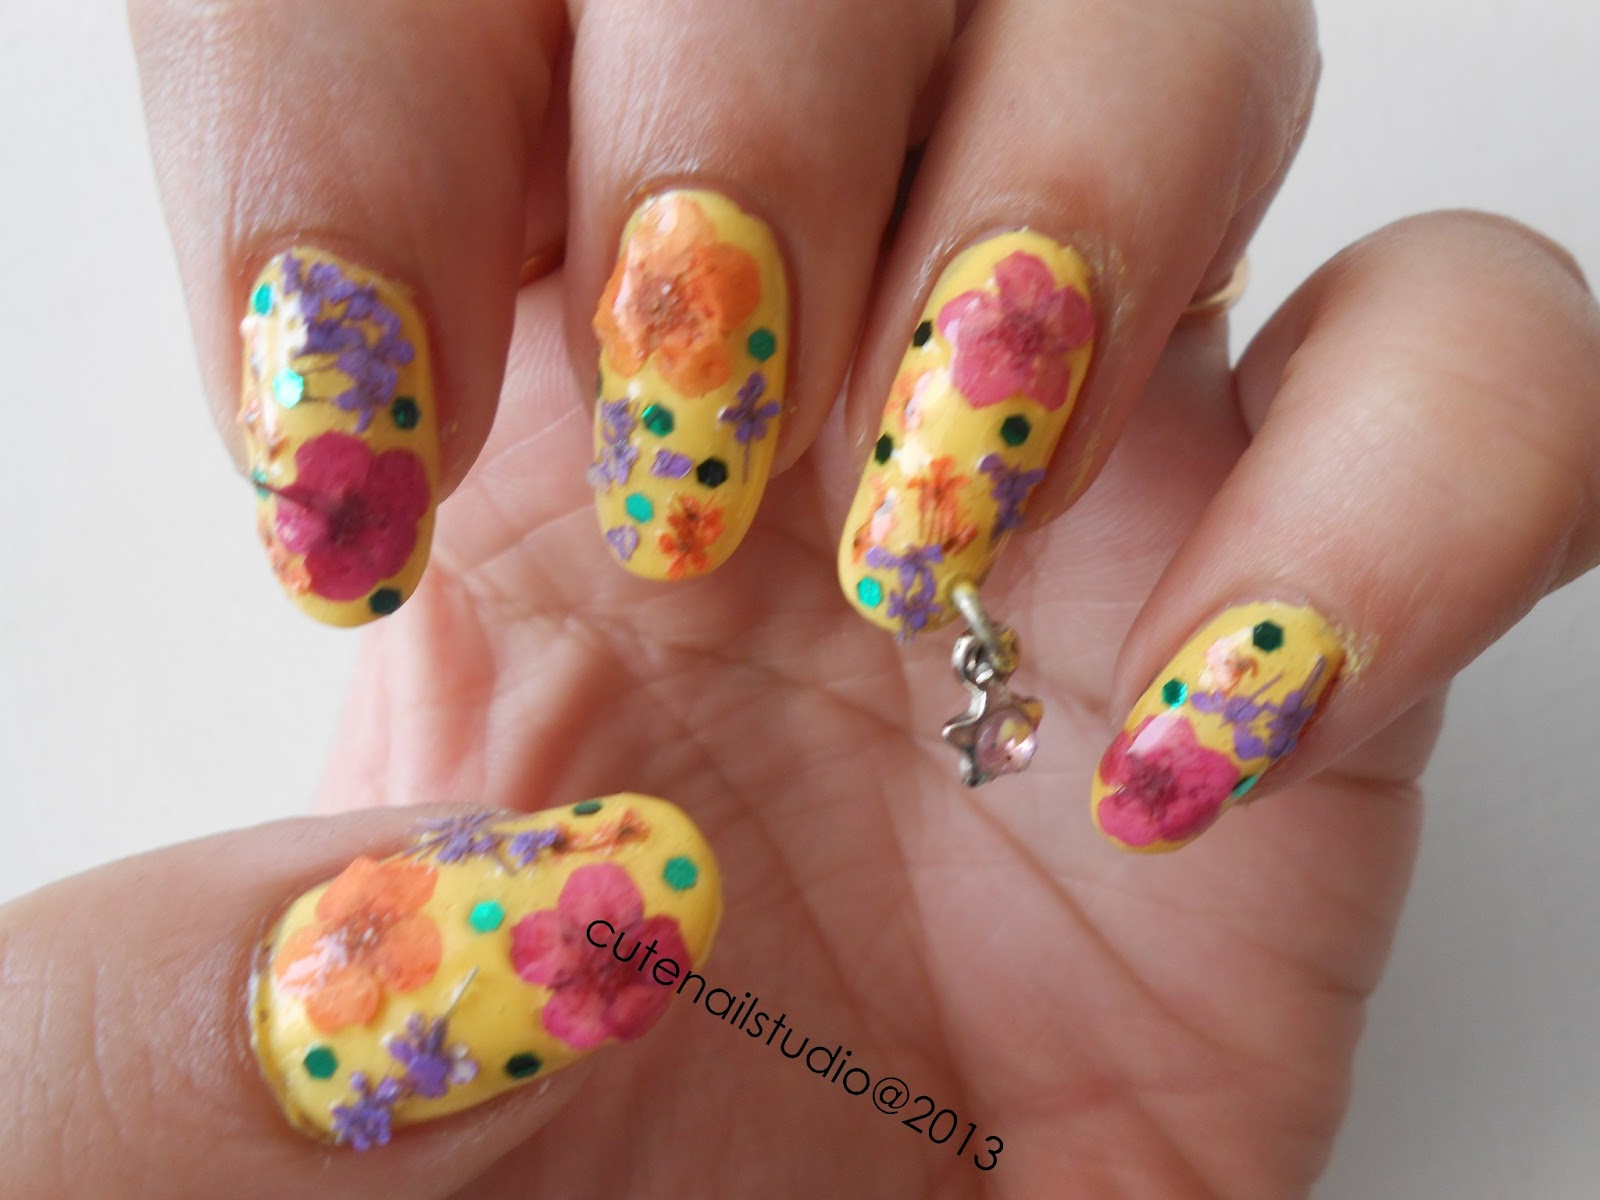 Cute nails: Nail art using dry flowers